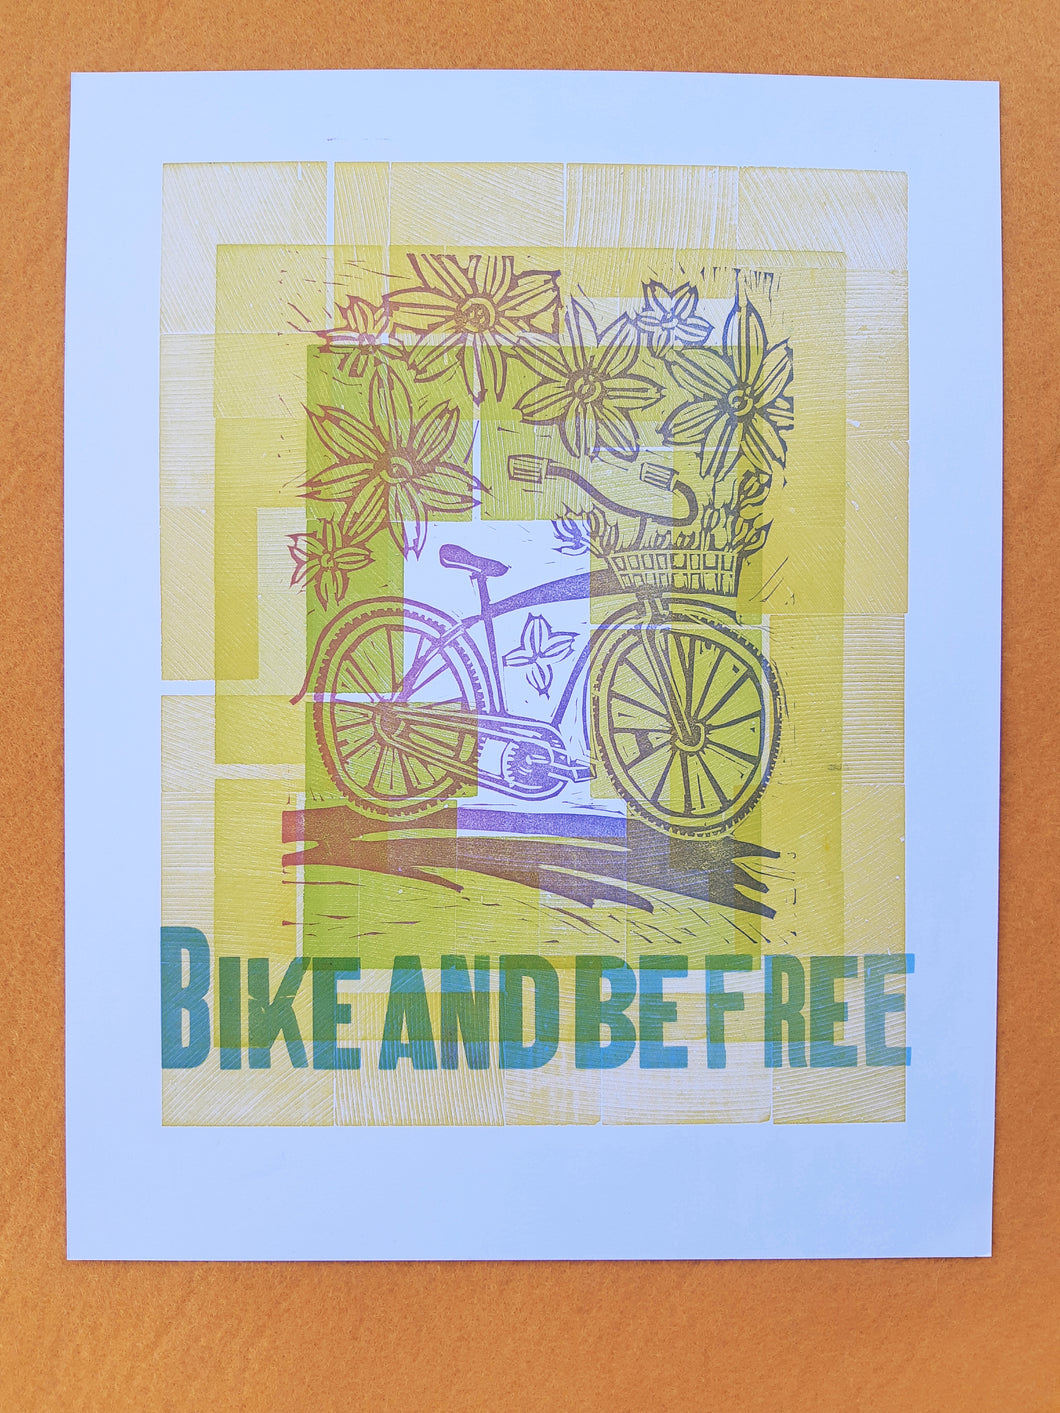 Bike And Be Free